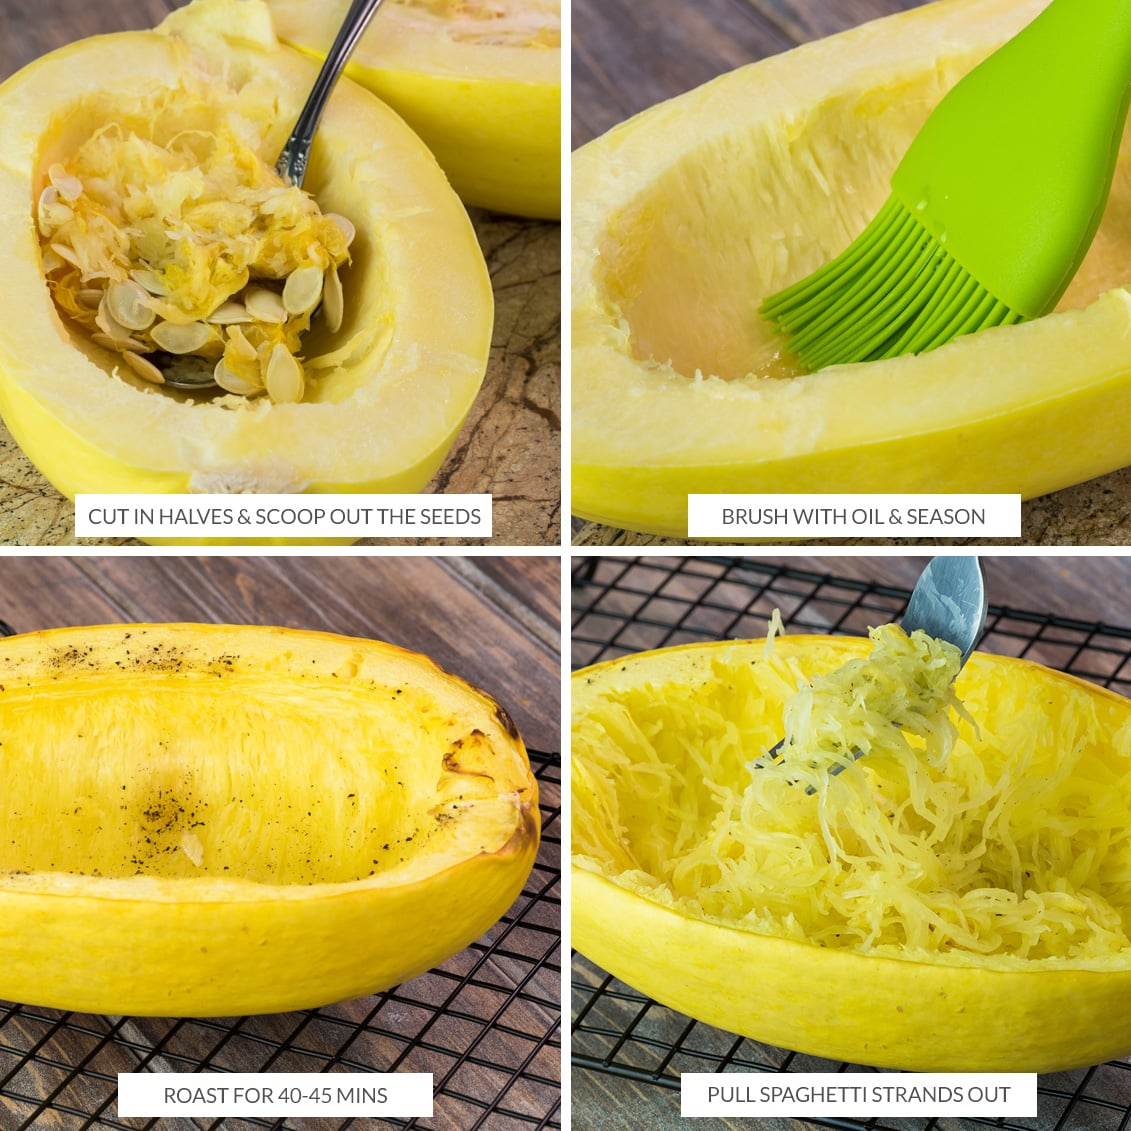 How to bake spaghetti squash for noodles